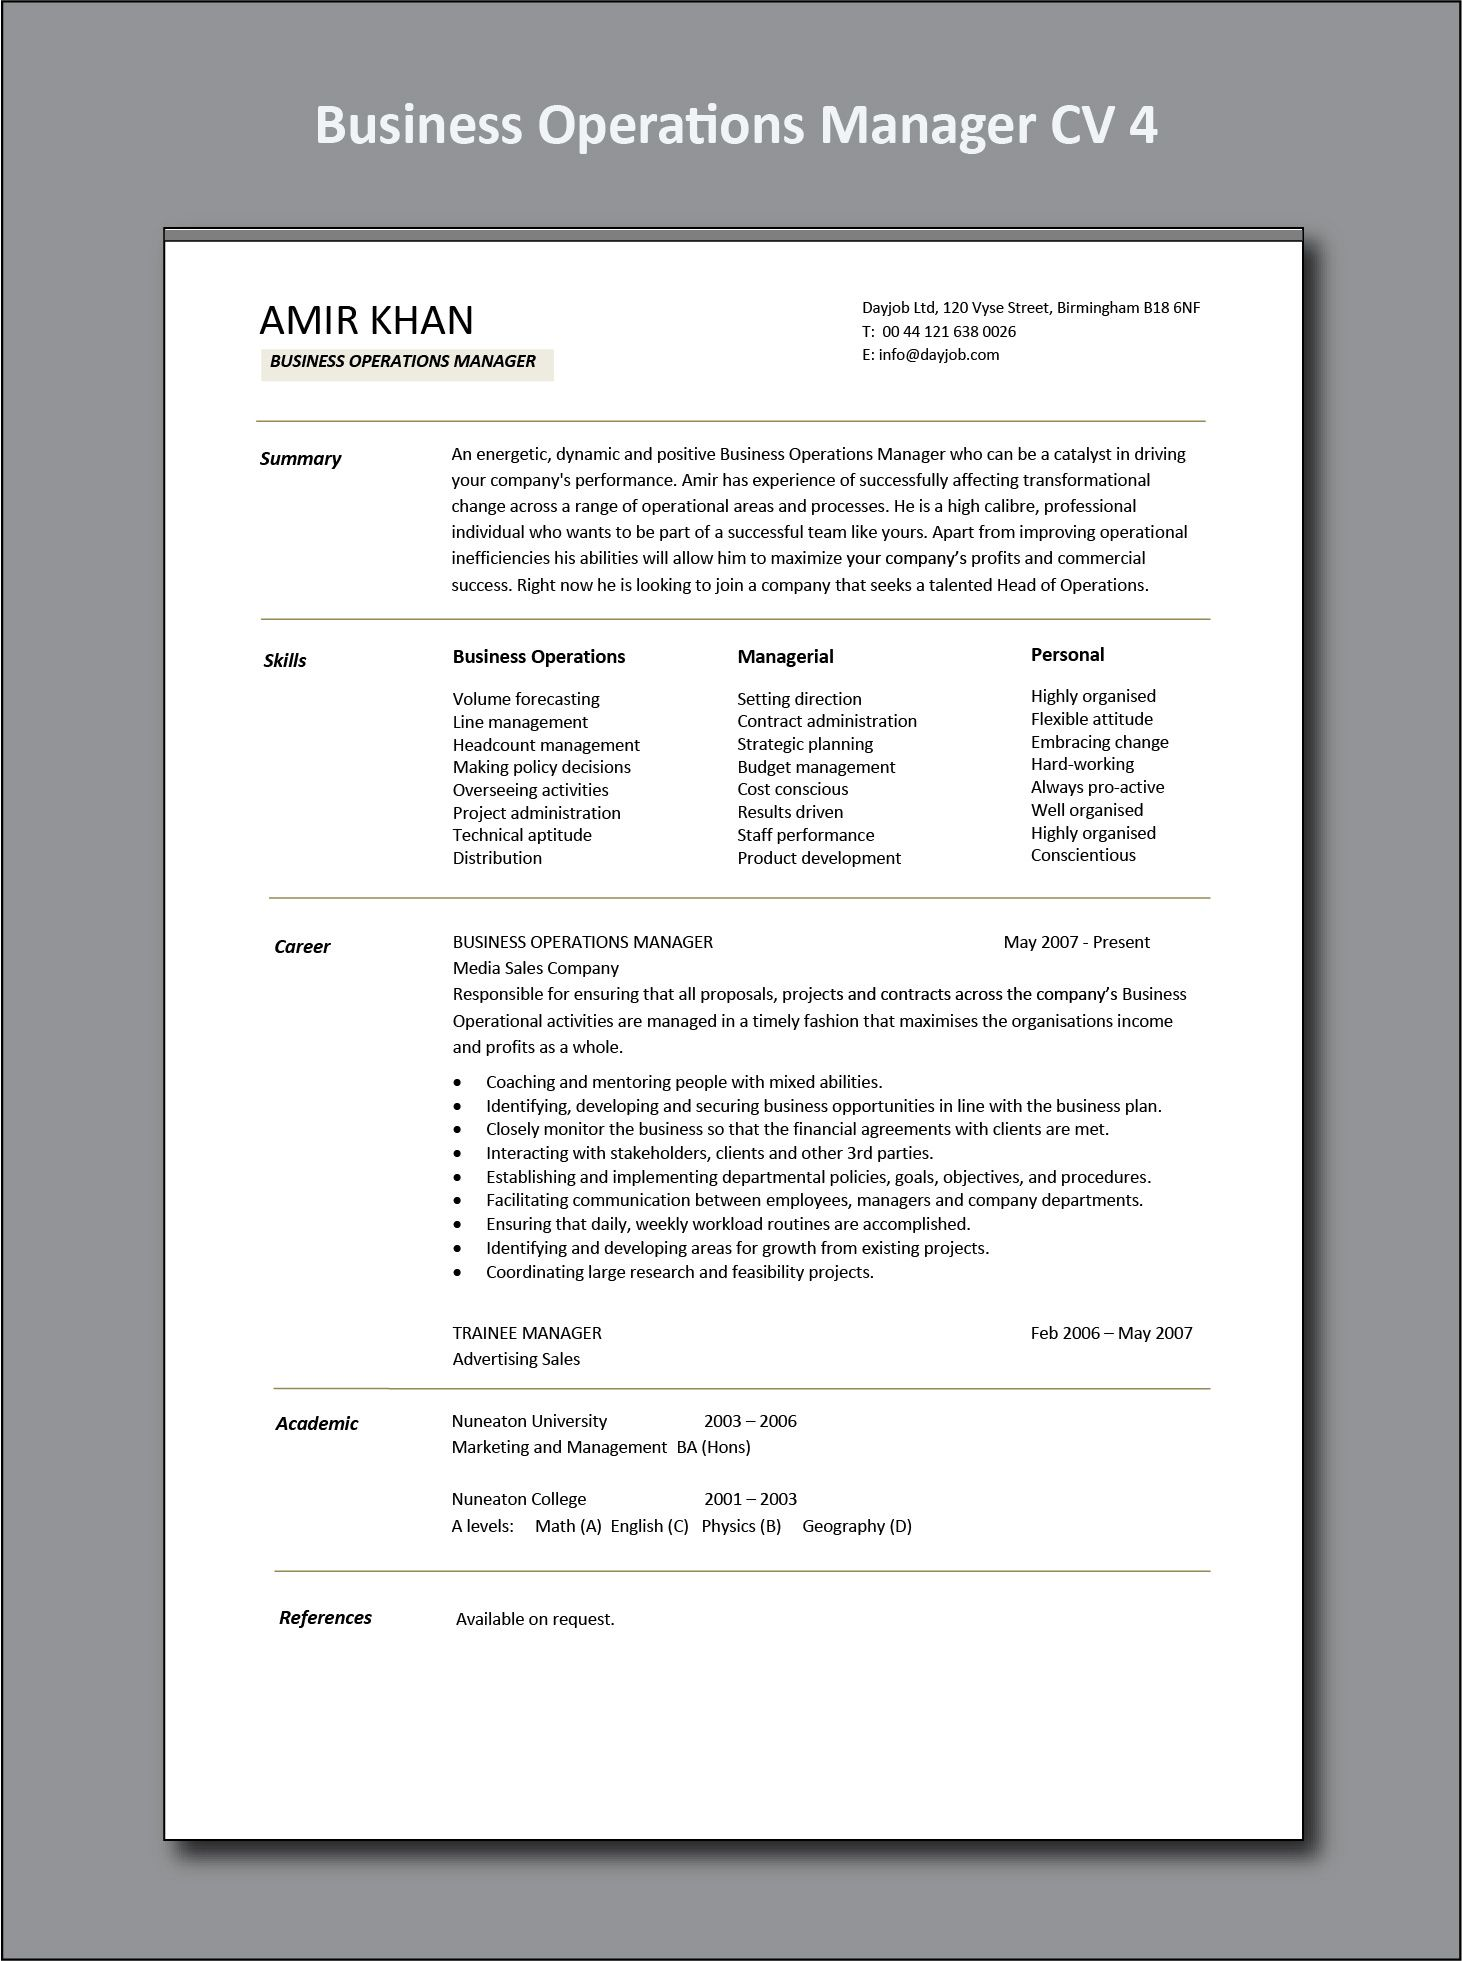 Business Operations Manager CV 4 example, project, PDF ...